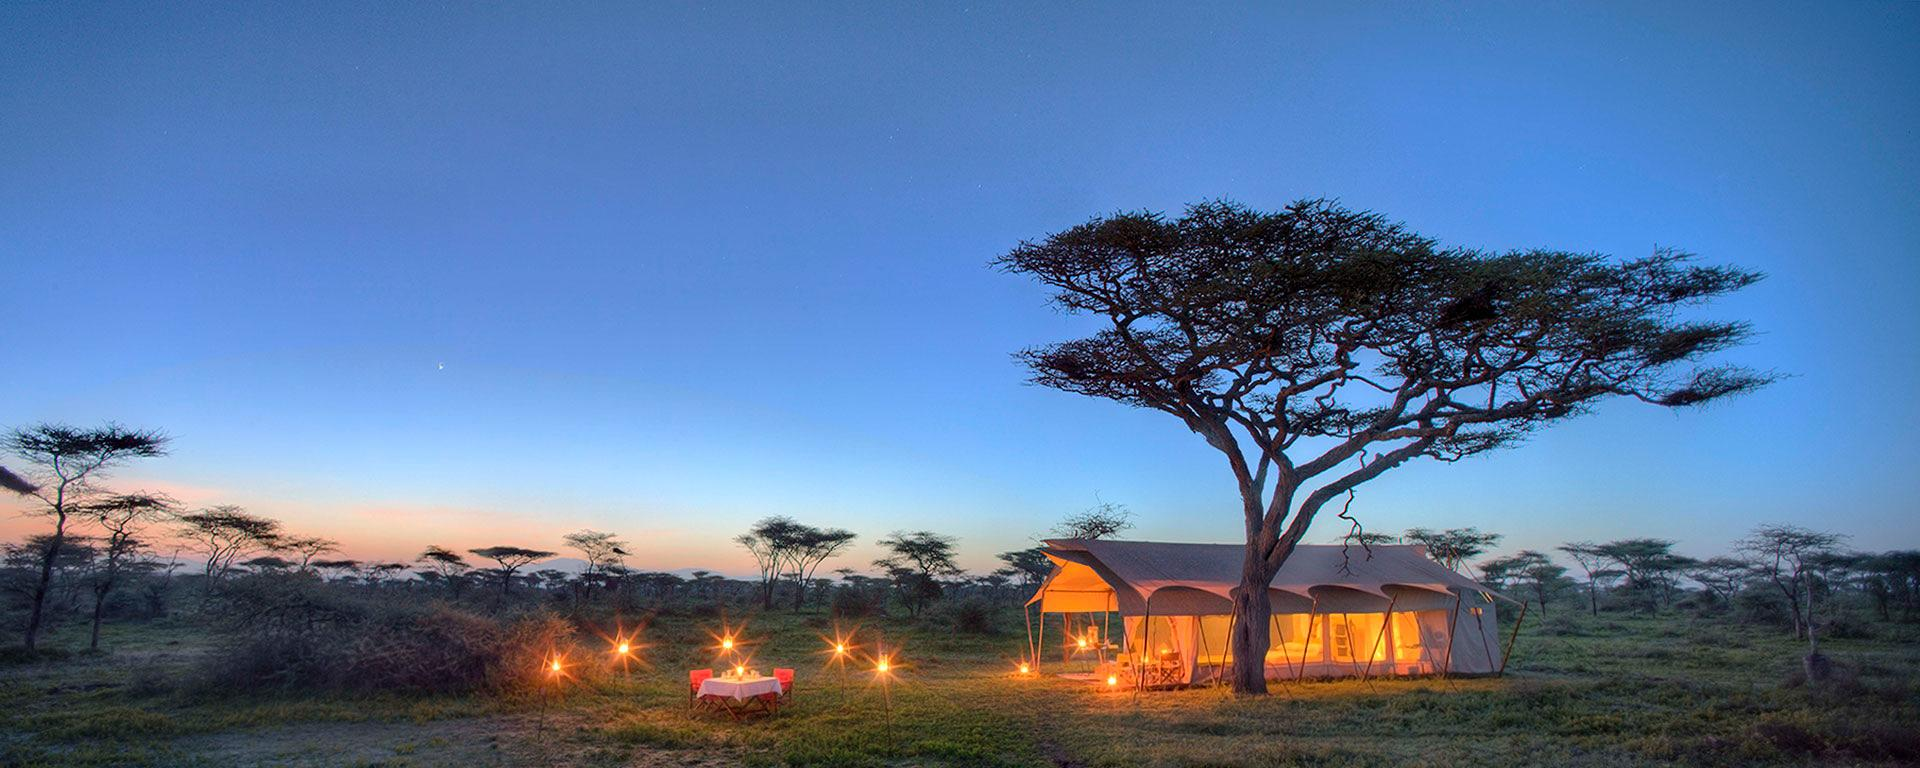 serengeti-under-canvas-honeymoon